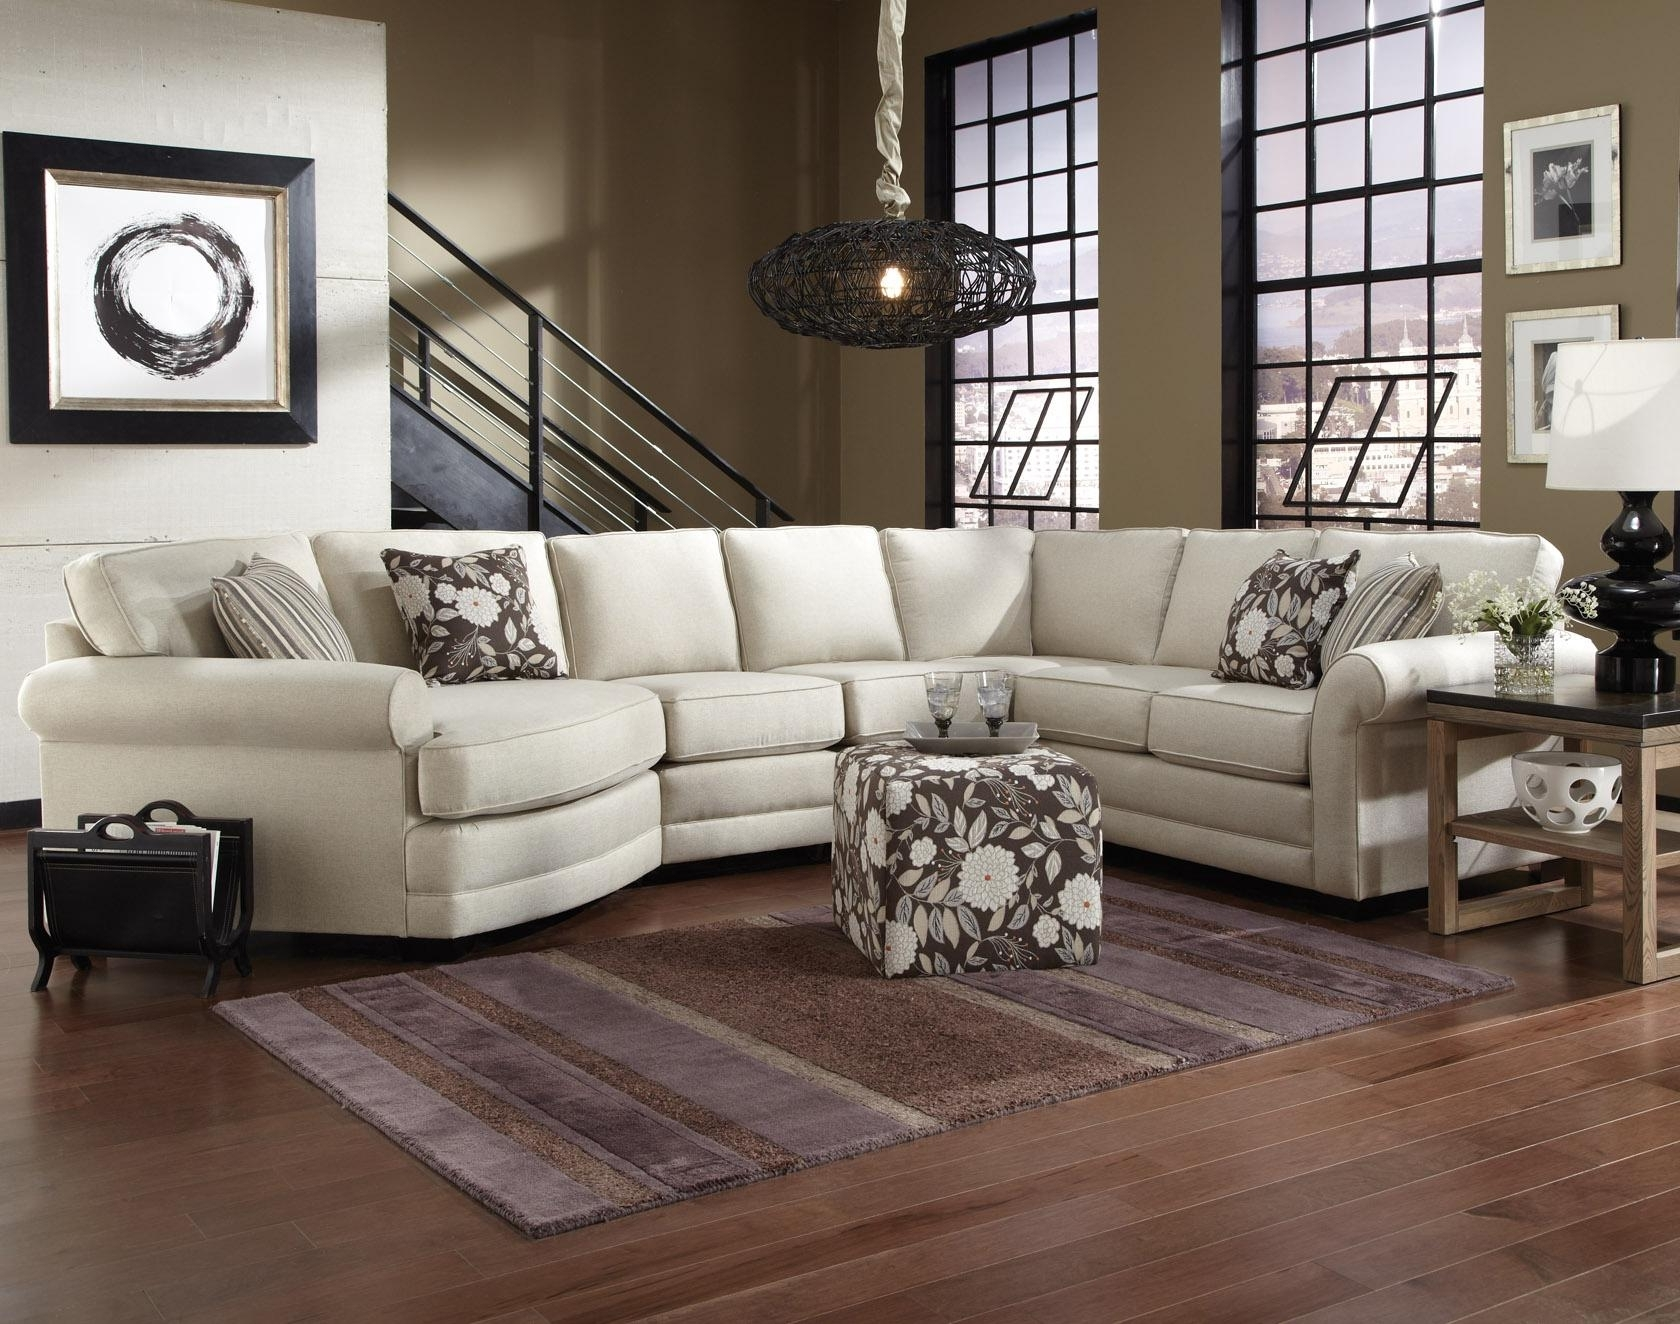 Newest Cuddler Sectional Sofas Within England Brantley 5 Seat Sectional Sofa With Cuddler (View 15 of 20)